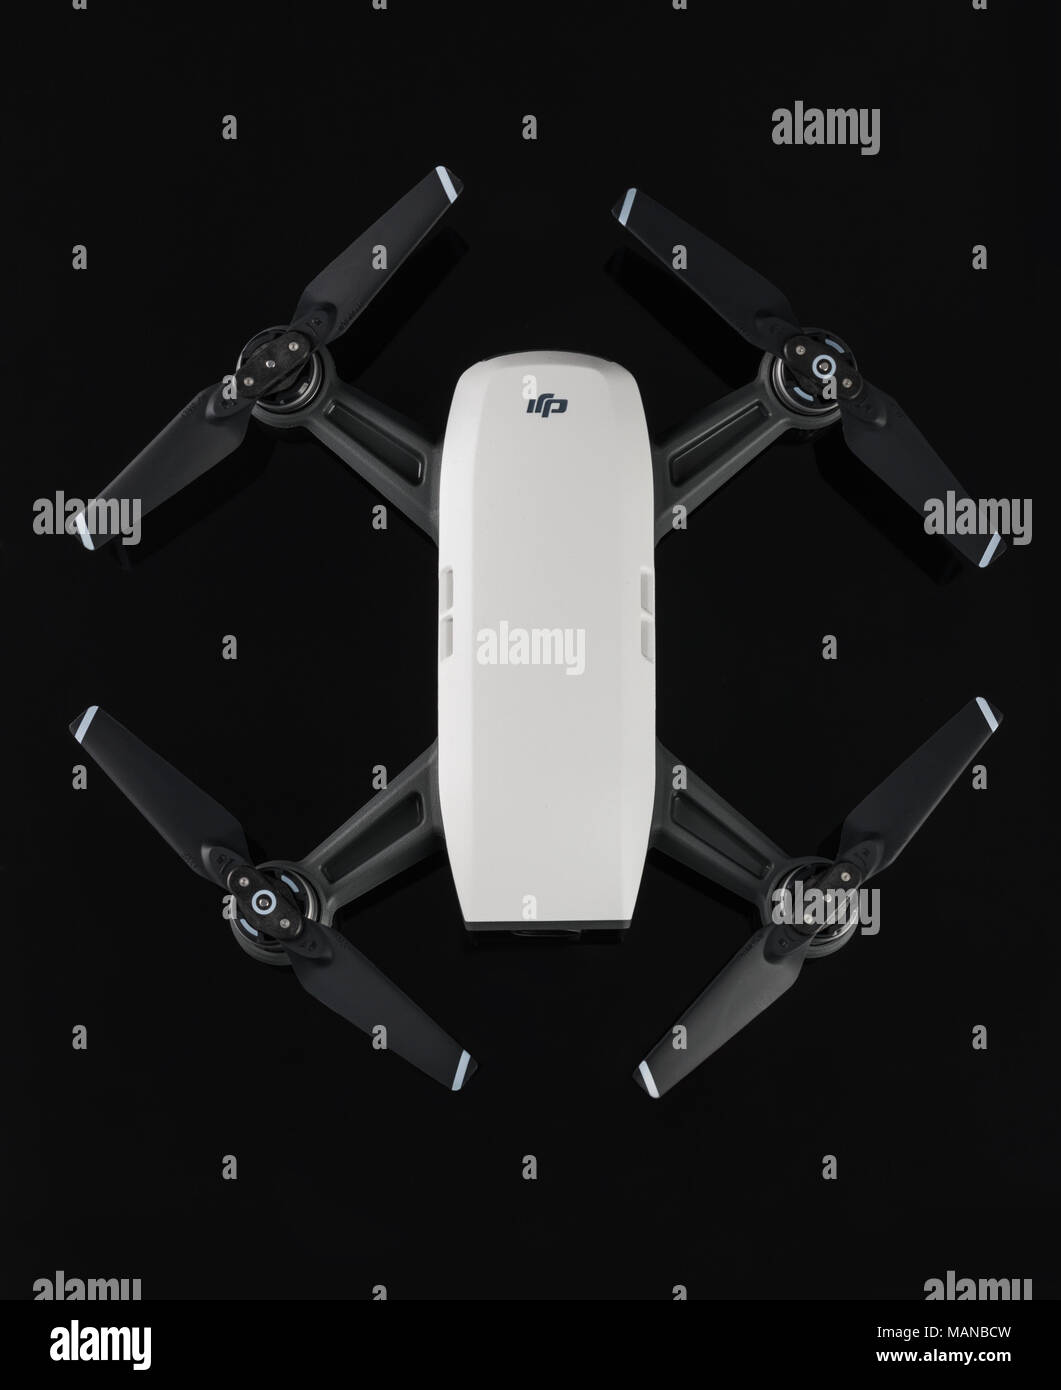 Varna, Bulgaria - February 14 ,2018: Flying drone quadcopter Dji Spark is mini drone that features all of DJI's signature technologies, isolated on bl - Stock Image